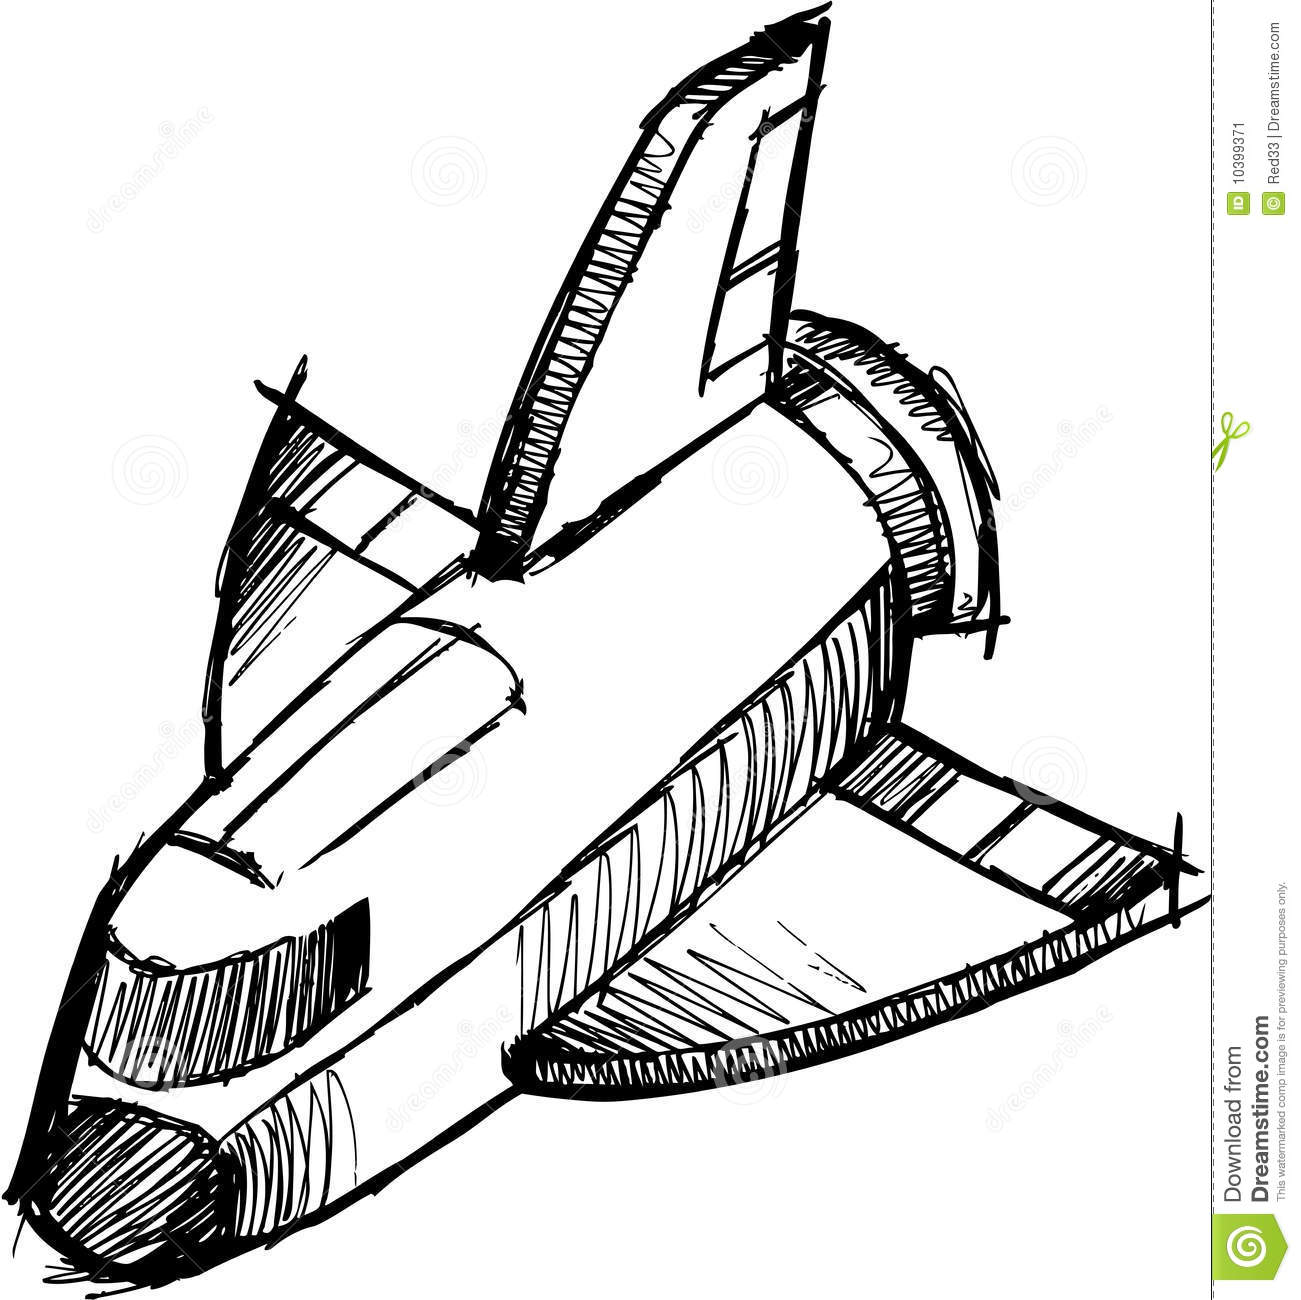 Sketchy Shuttle Rocket Vector Stock Vector